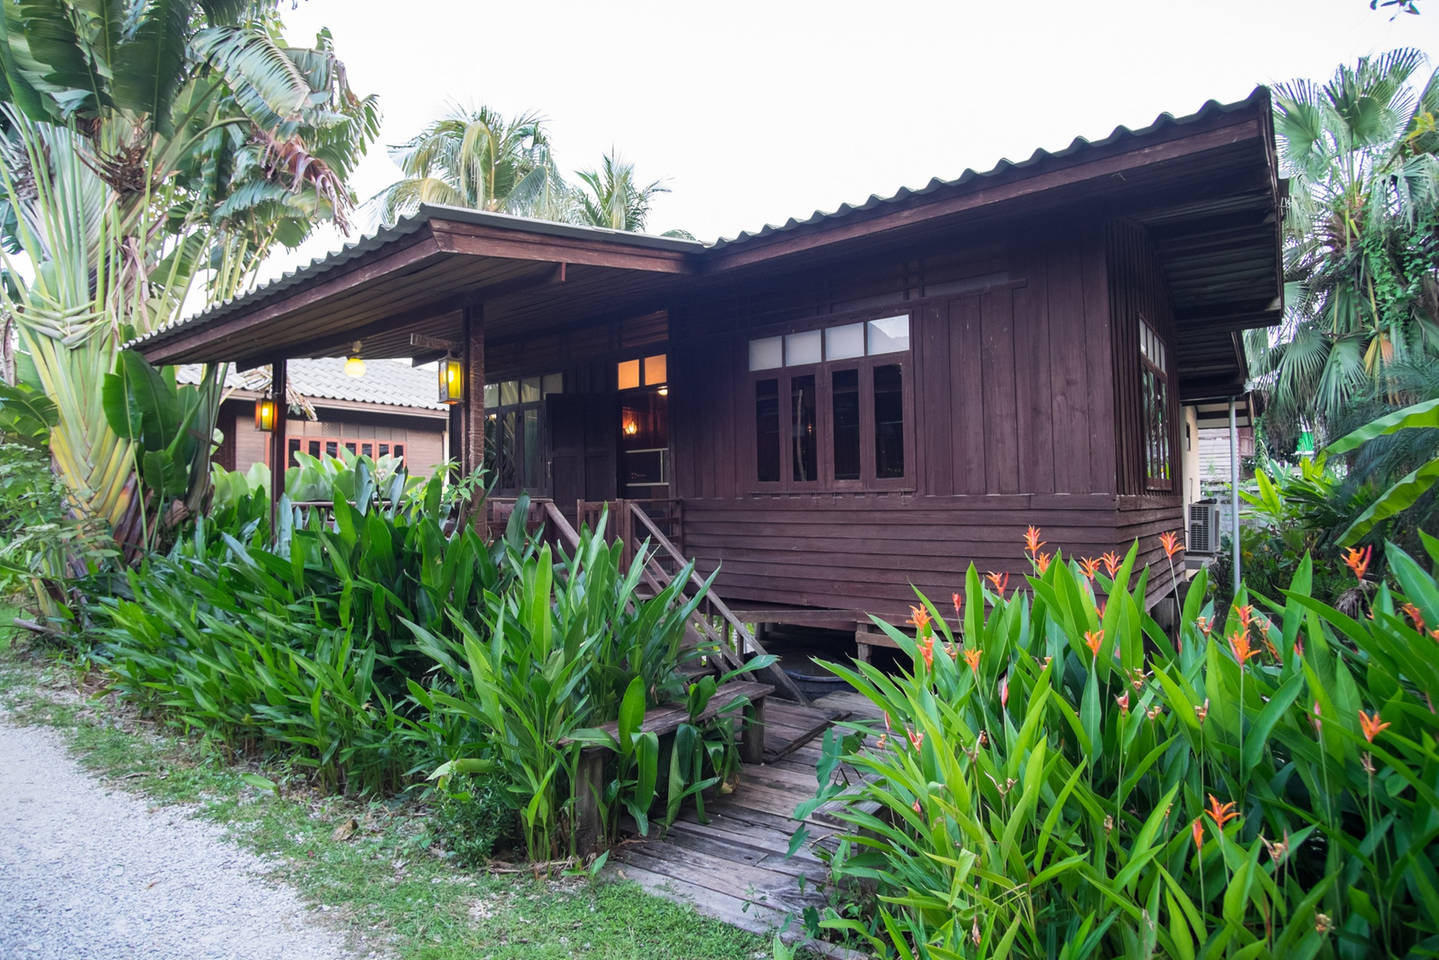 old-traditional-wooden-house-thailand-01